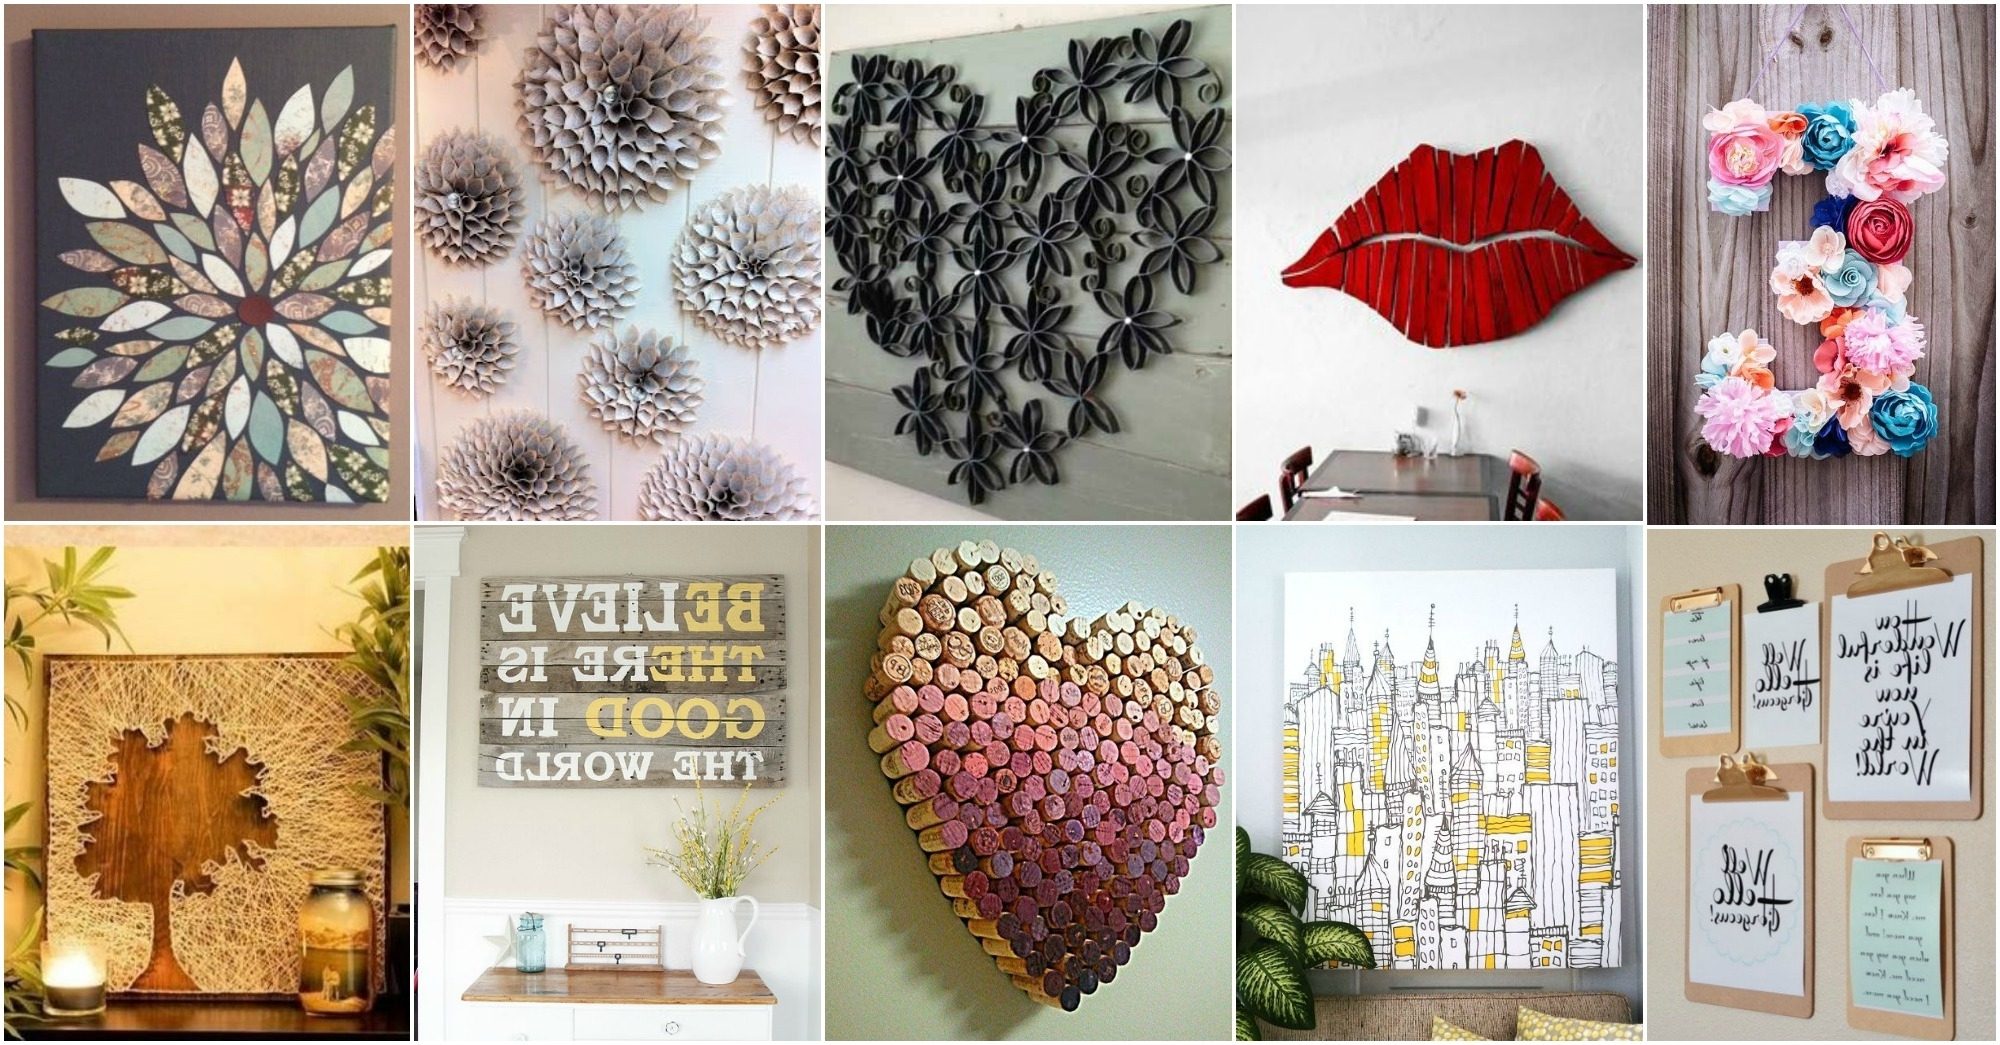 More Amazing Diy Wall Art Ideas In Recent Diy Wall Art (View 9 of 15)